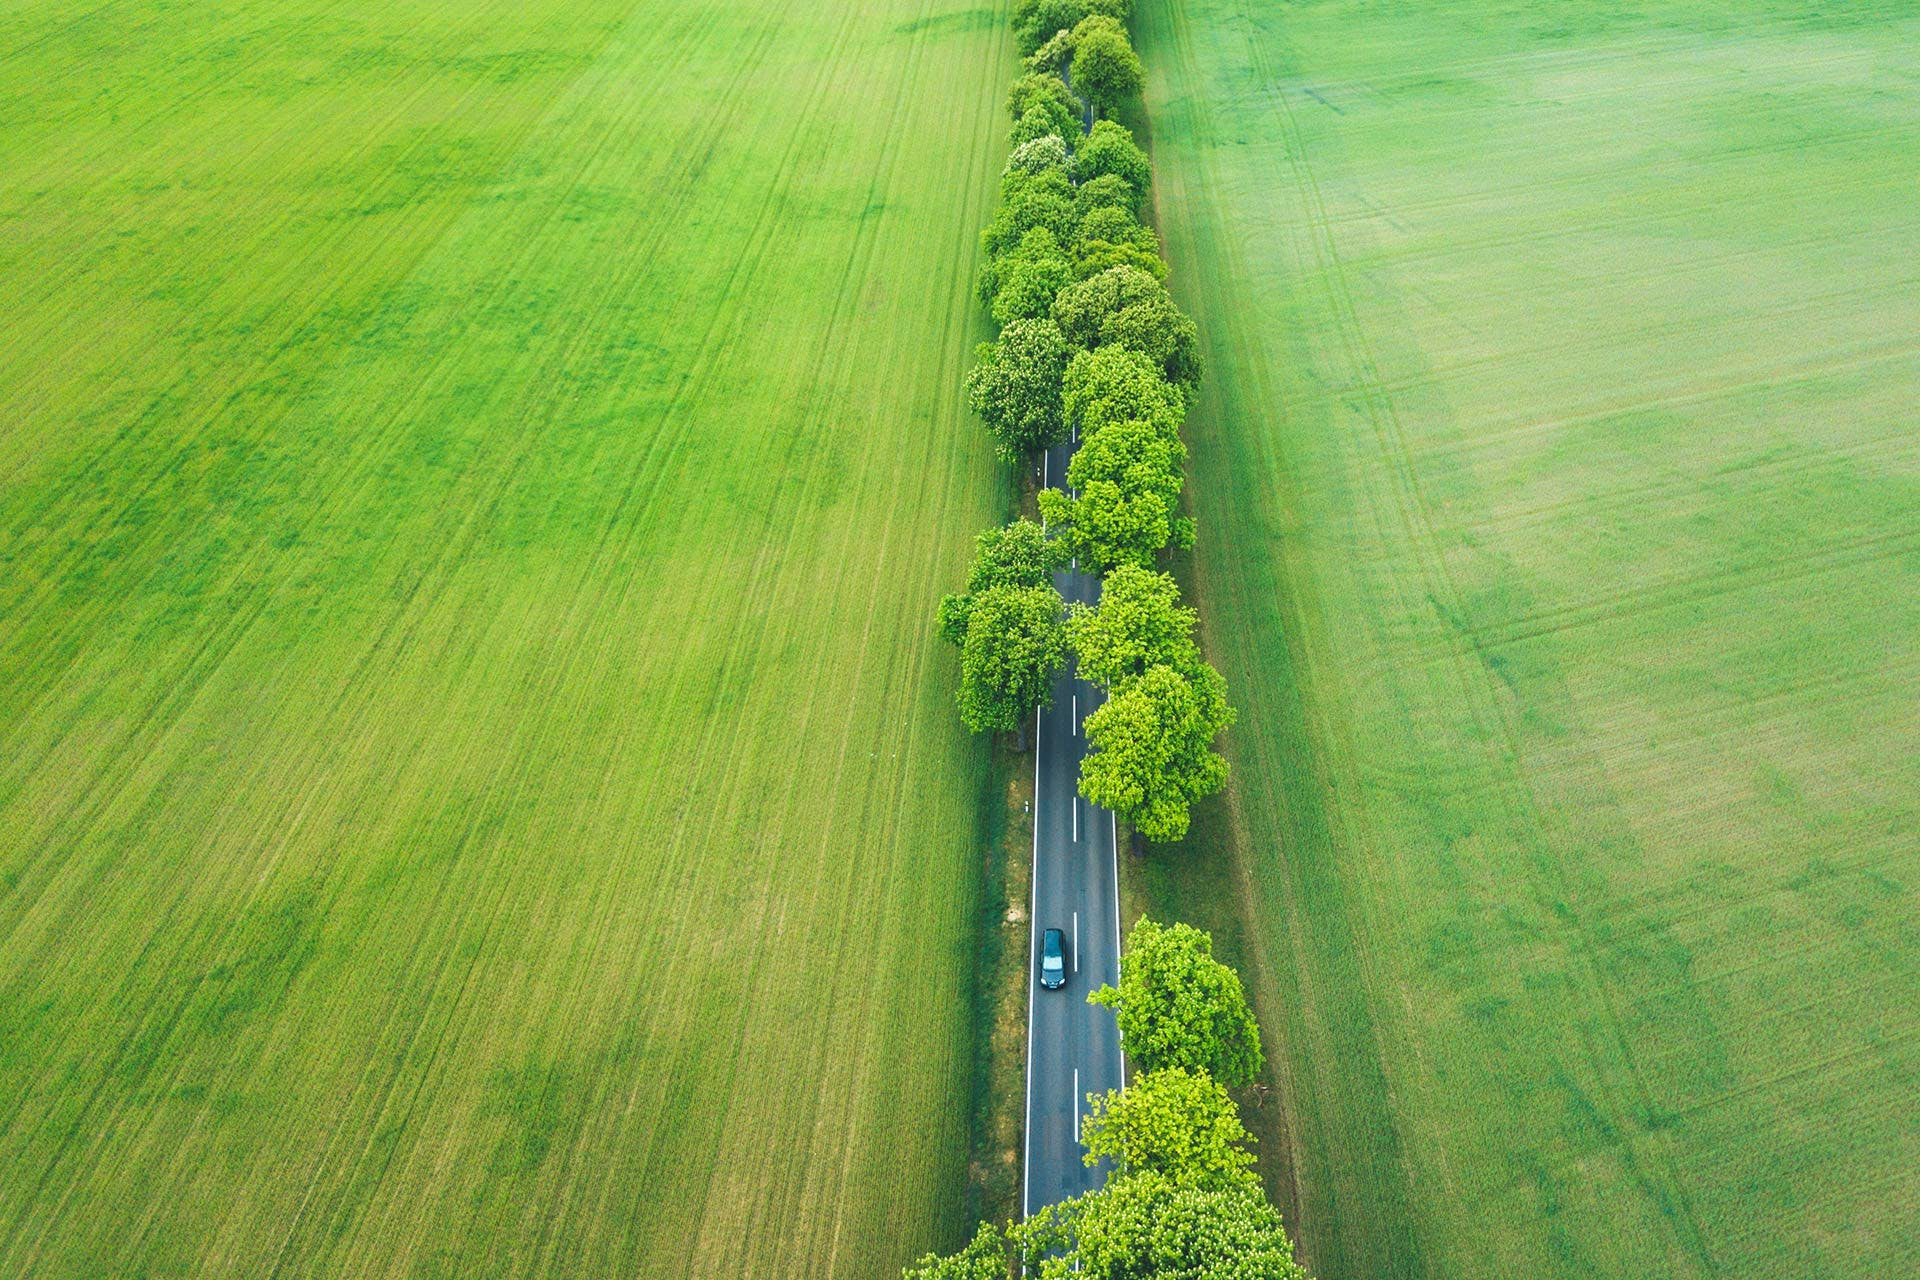 Bird's eye view: A car drives through an avenue surrounded by green fields.